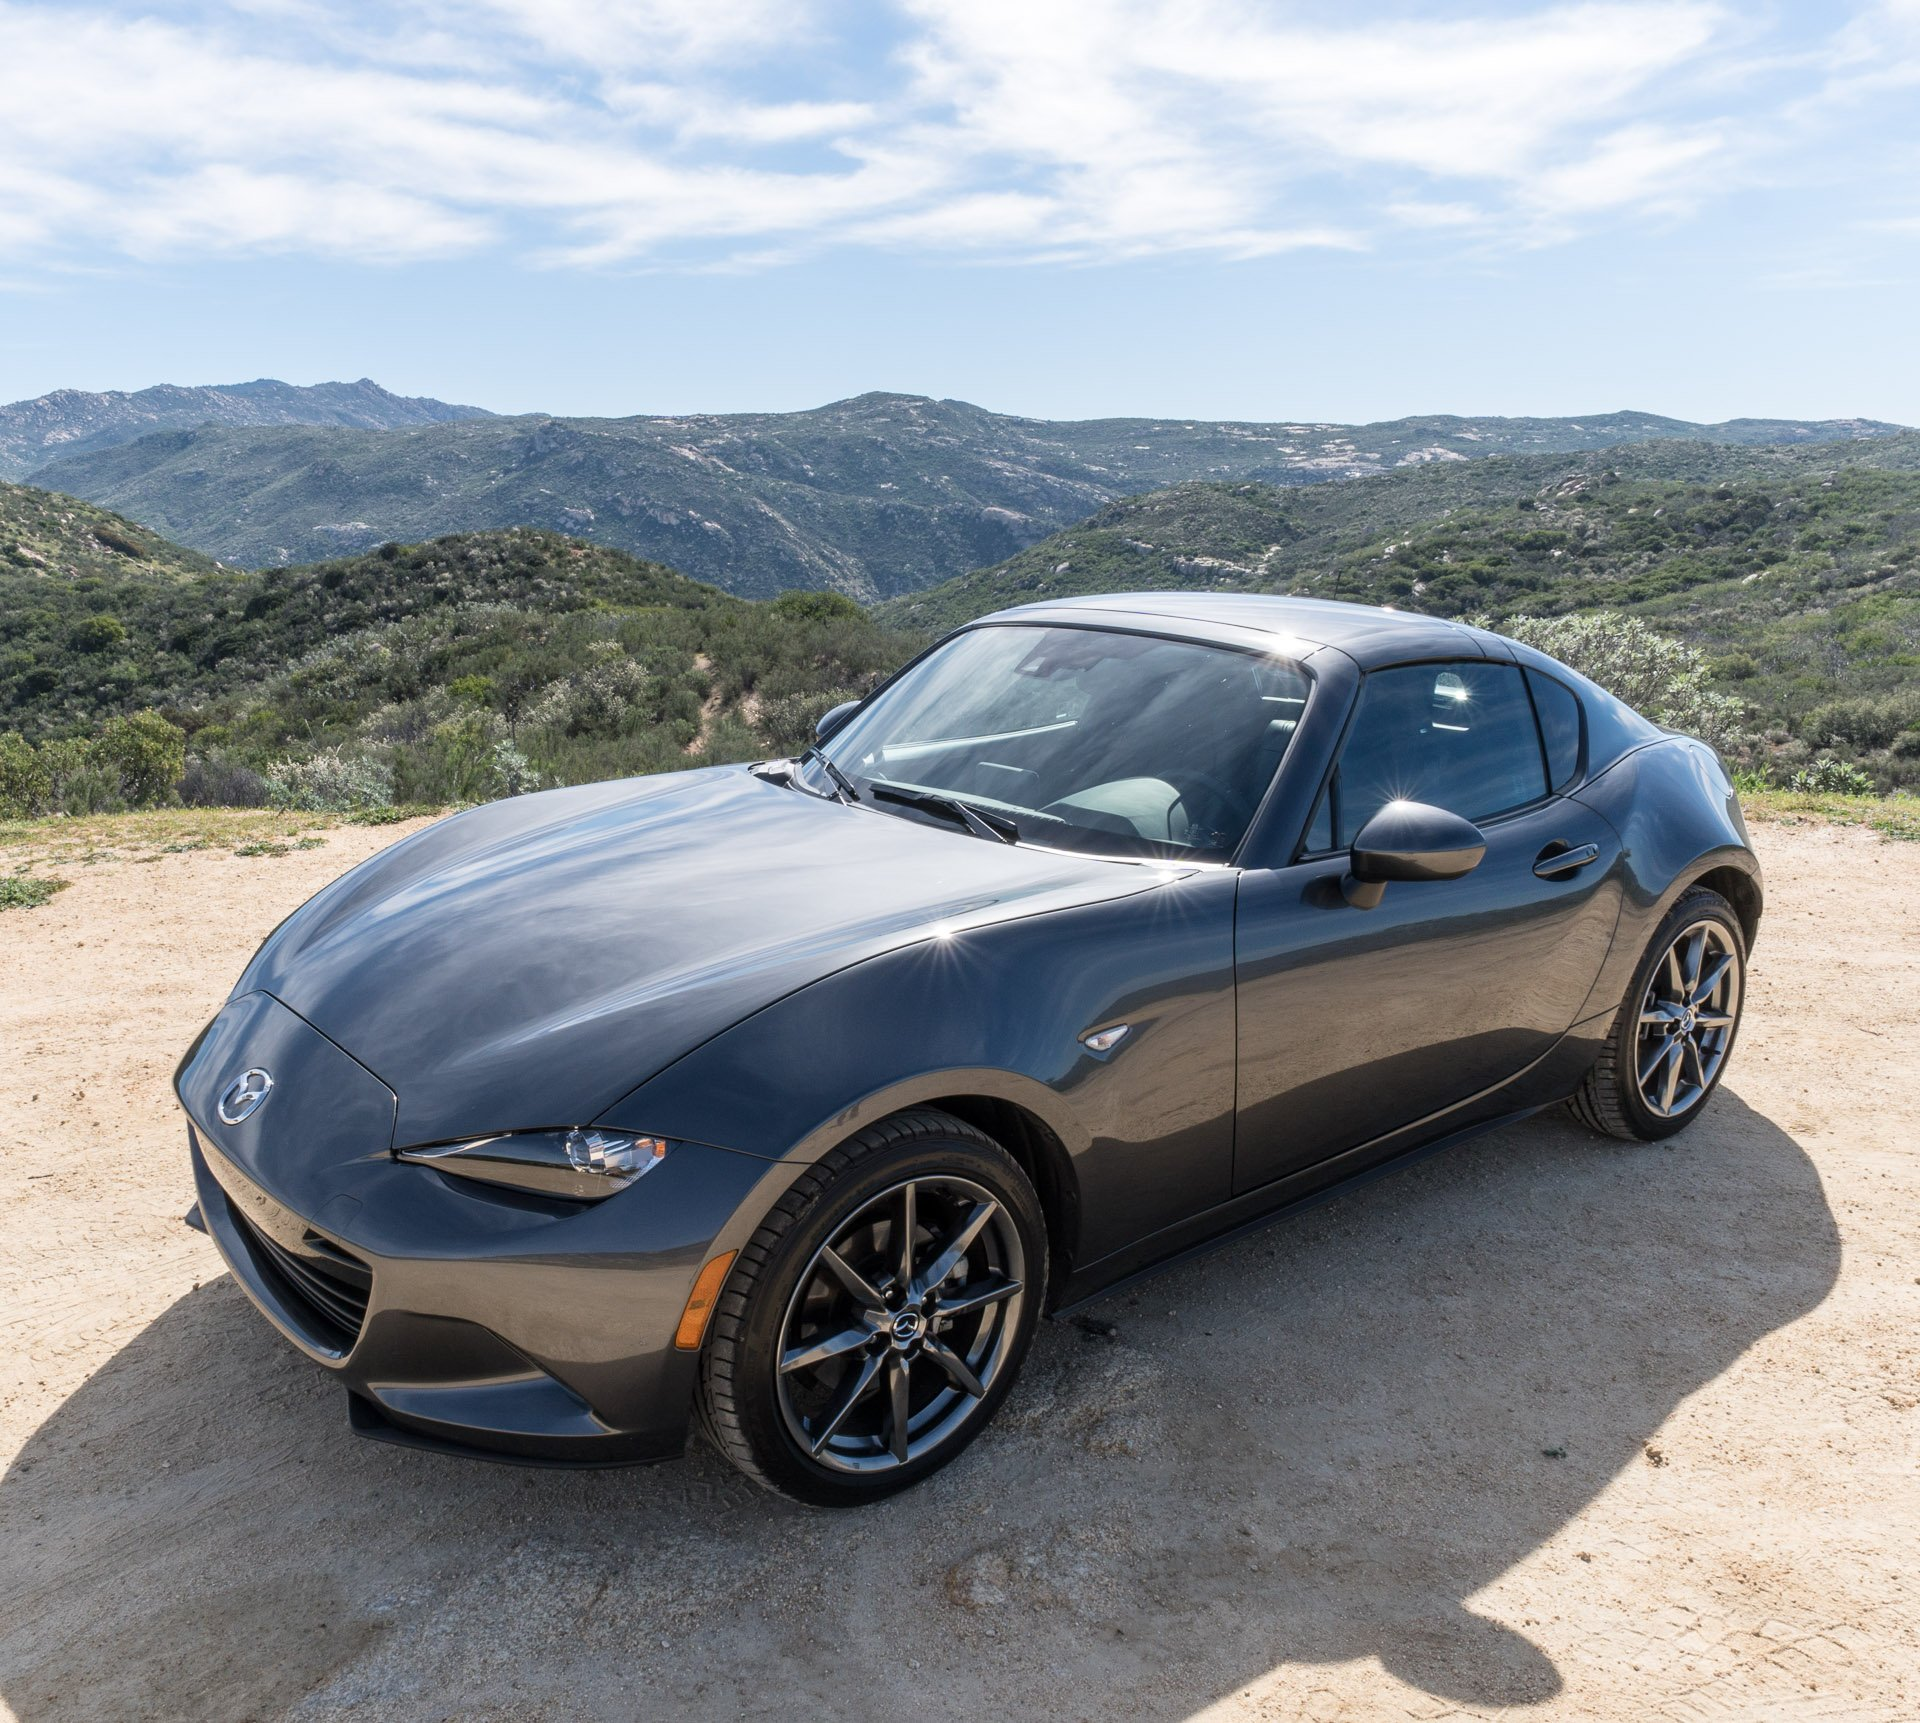 2017 Mx 5 Rf >> The 2017 Mazda MX-5 RF Is the Best Kind of Miata - 95 Octane